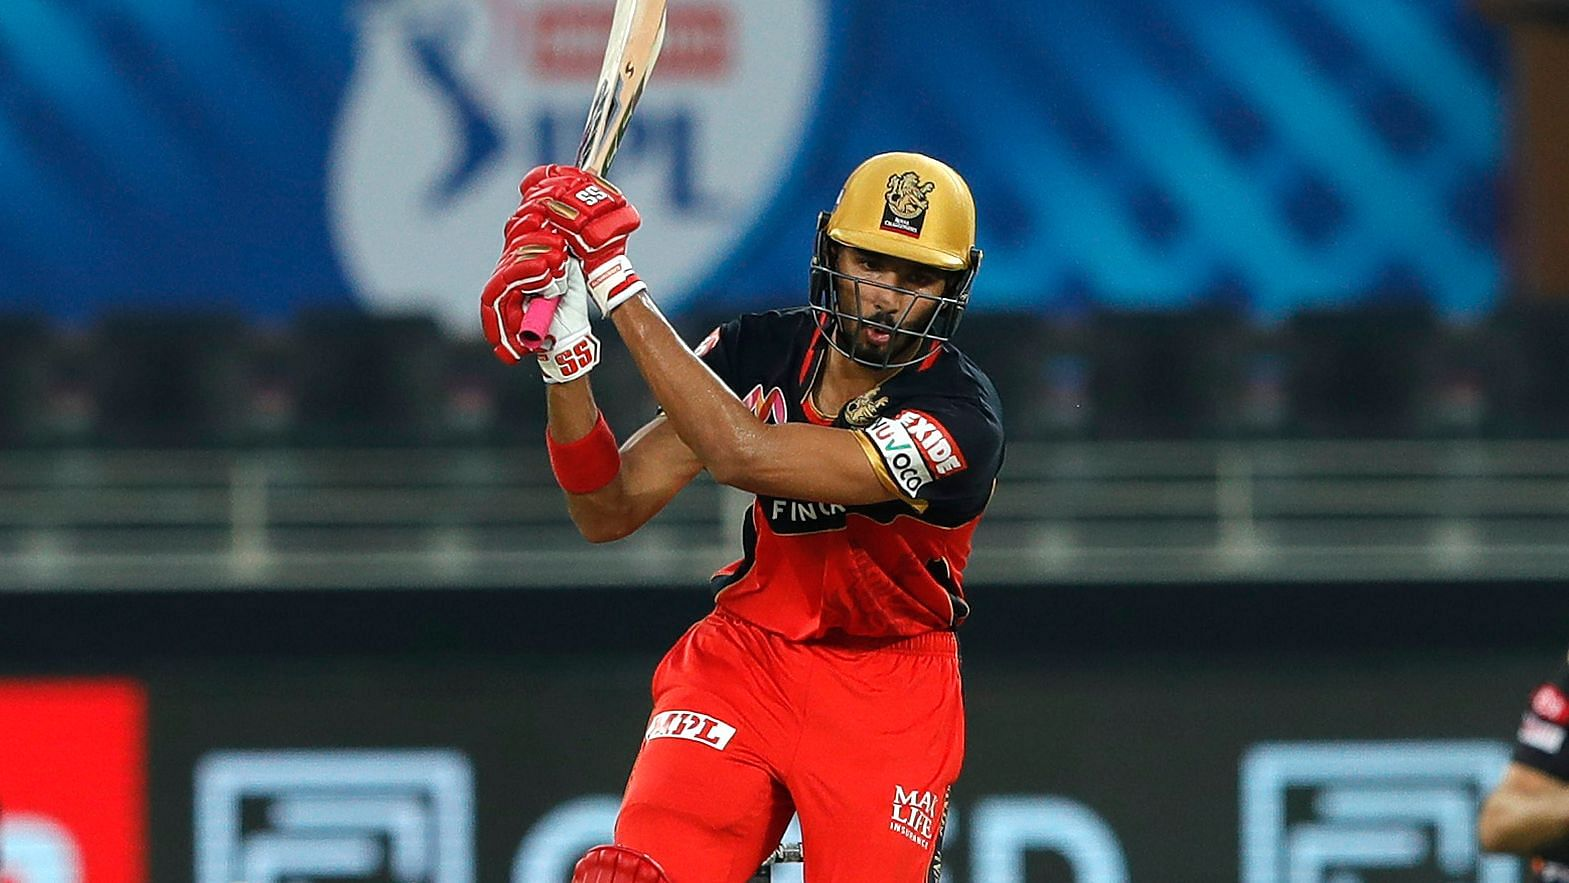 RCB's 20-Year-Old Opener Devdutt Padikkal Impresses on IPL Debut - Yahoo!  Cricket.